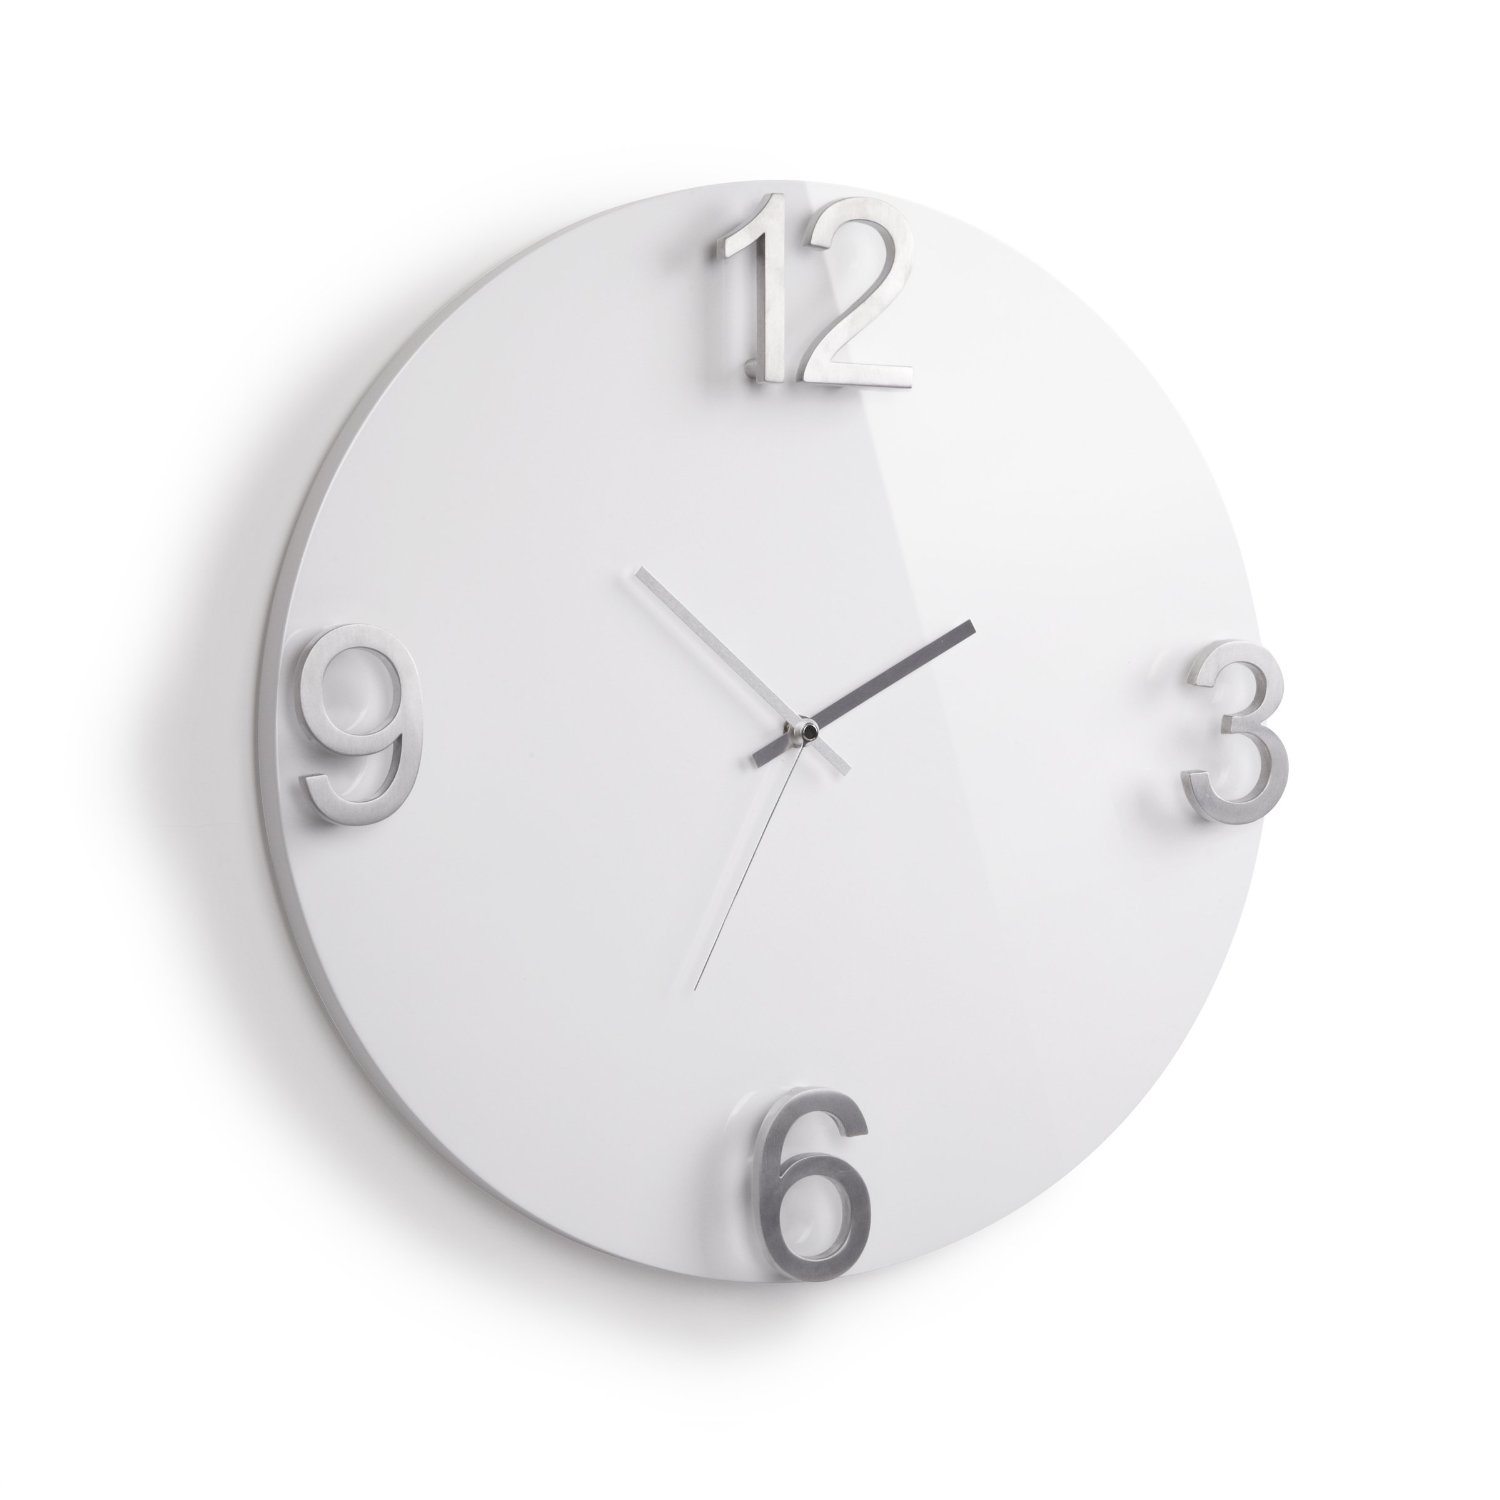 Umbra Elapse Wall Clock, White